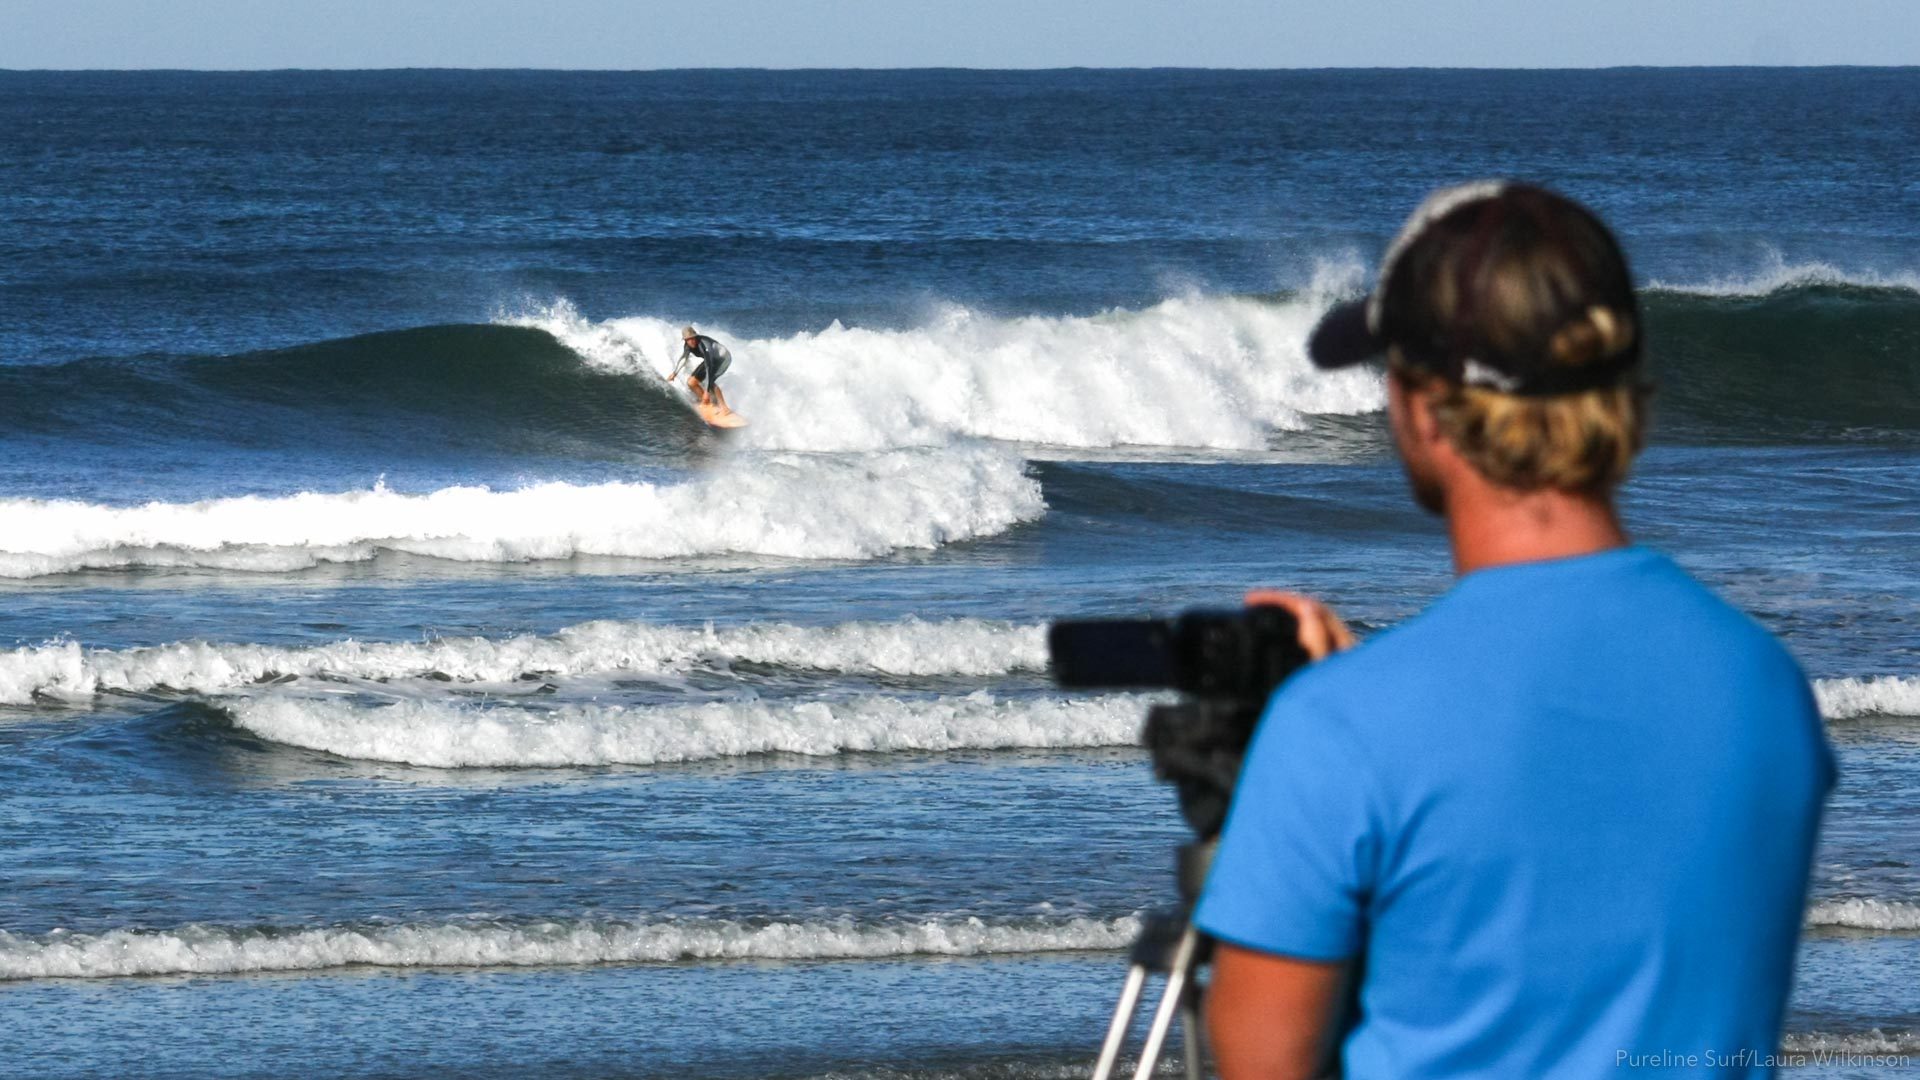 Photo of a surfer getting filmed. Video analysis should be part of any surf coaching experience. Pureline Surf